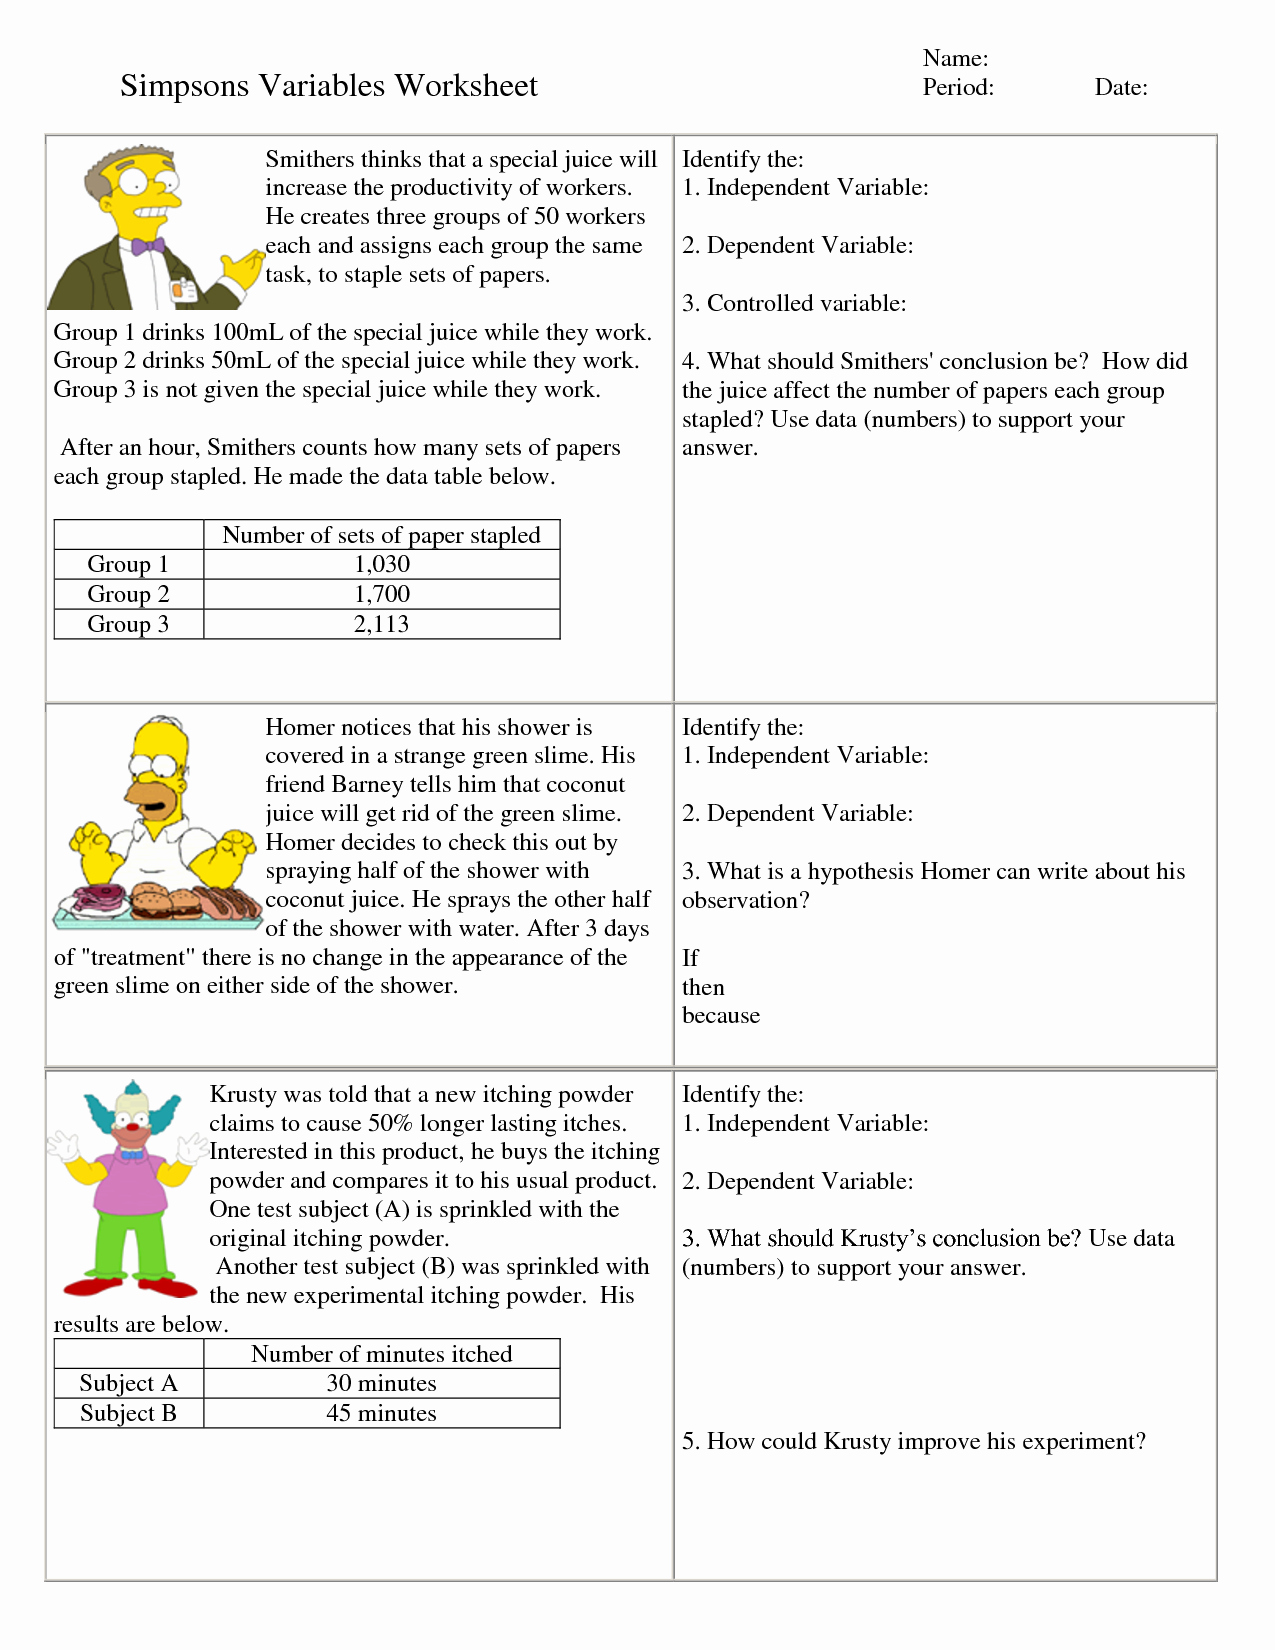 Independent and Dependent Variables Worksheet Best Of Independent Vs Dependent Variable Worksheet with Answers